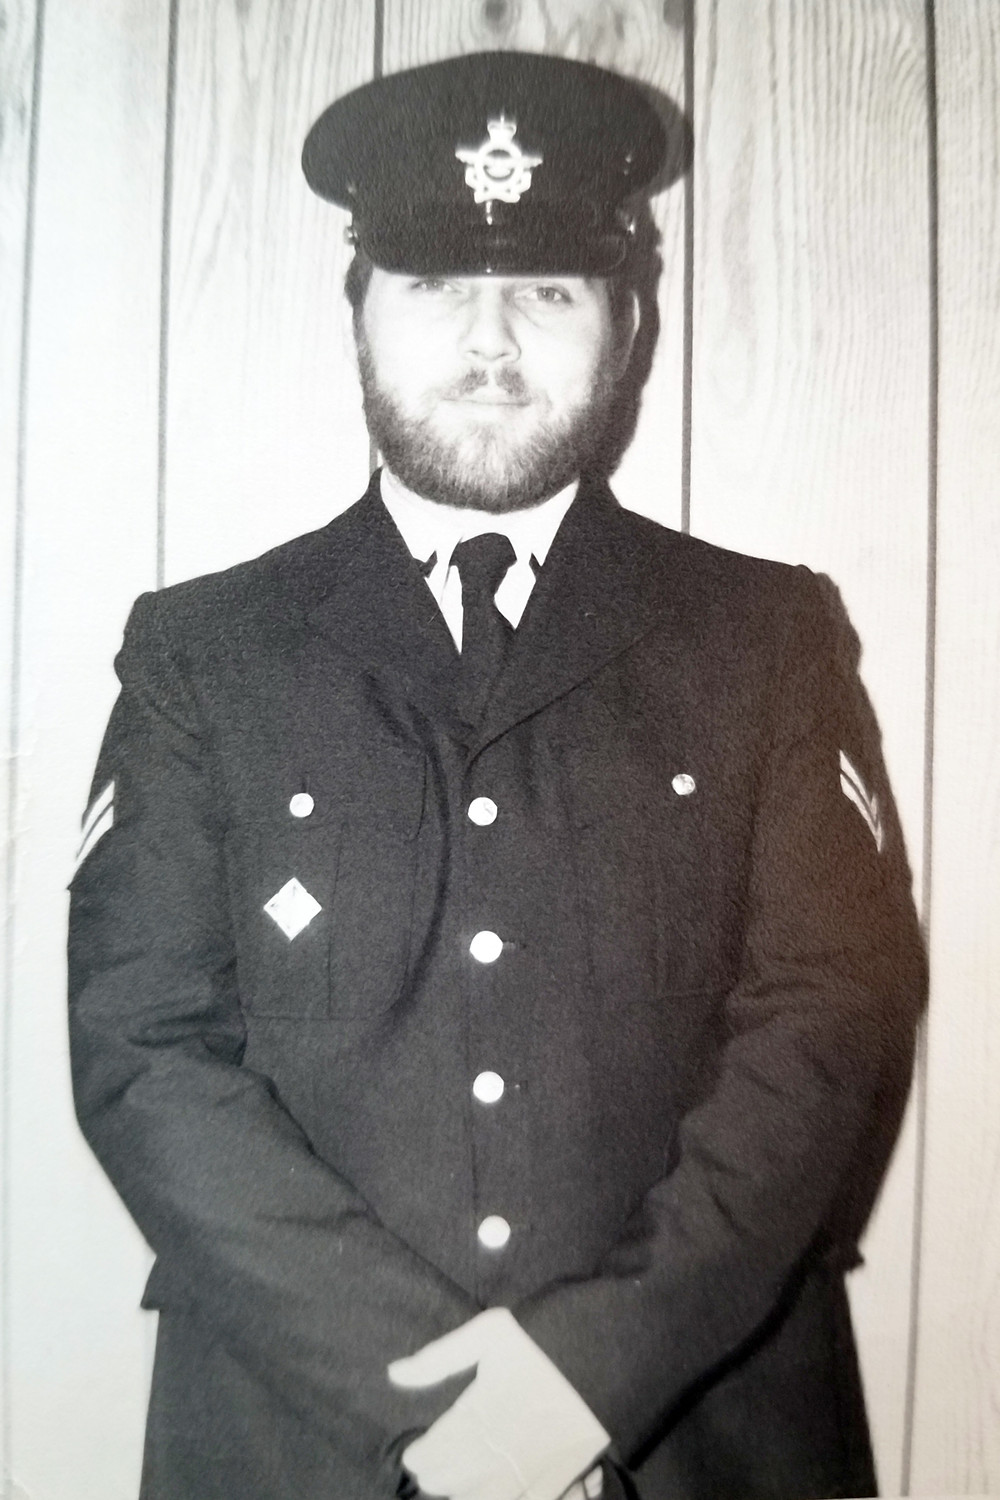 Corporal John O'Hara in his Canadian Armed Forces dress uniform during the '70s.